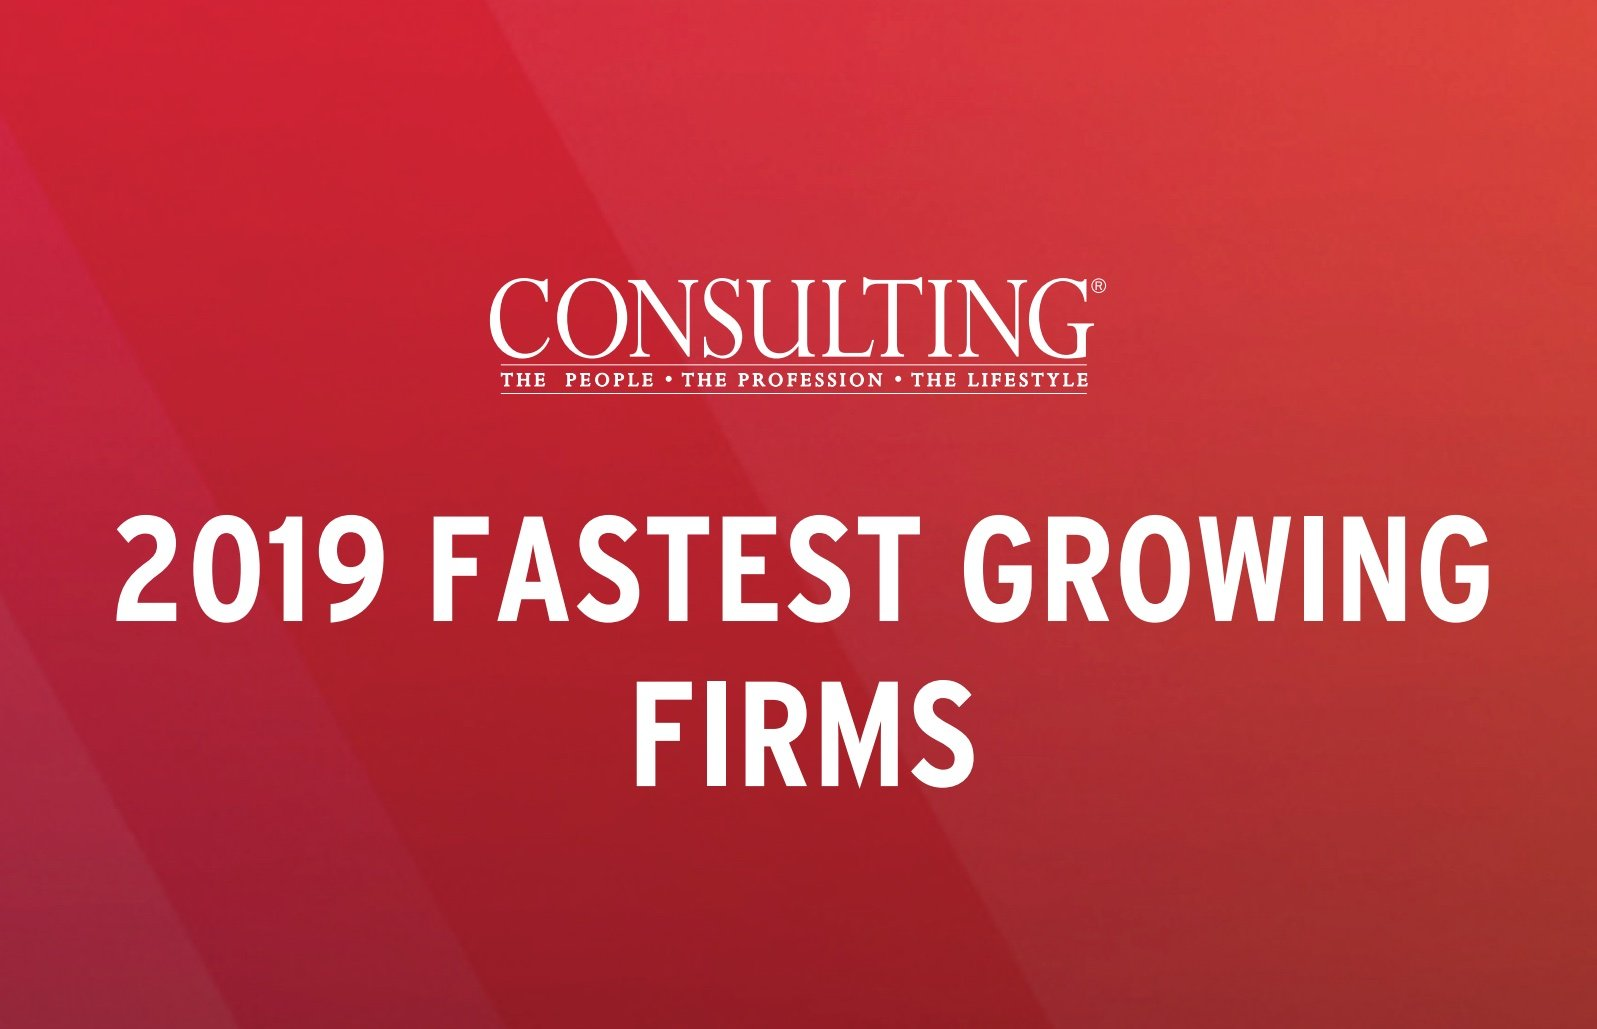 Consulting magazine Unveils the Profession's Fastest Growing Firms for 2019